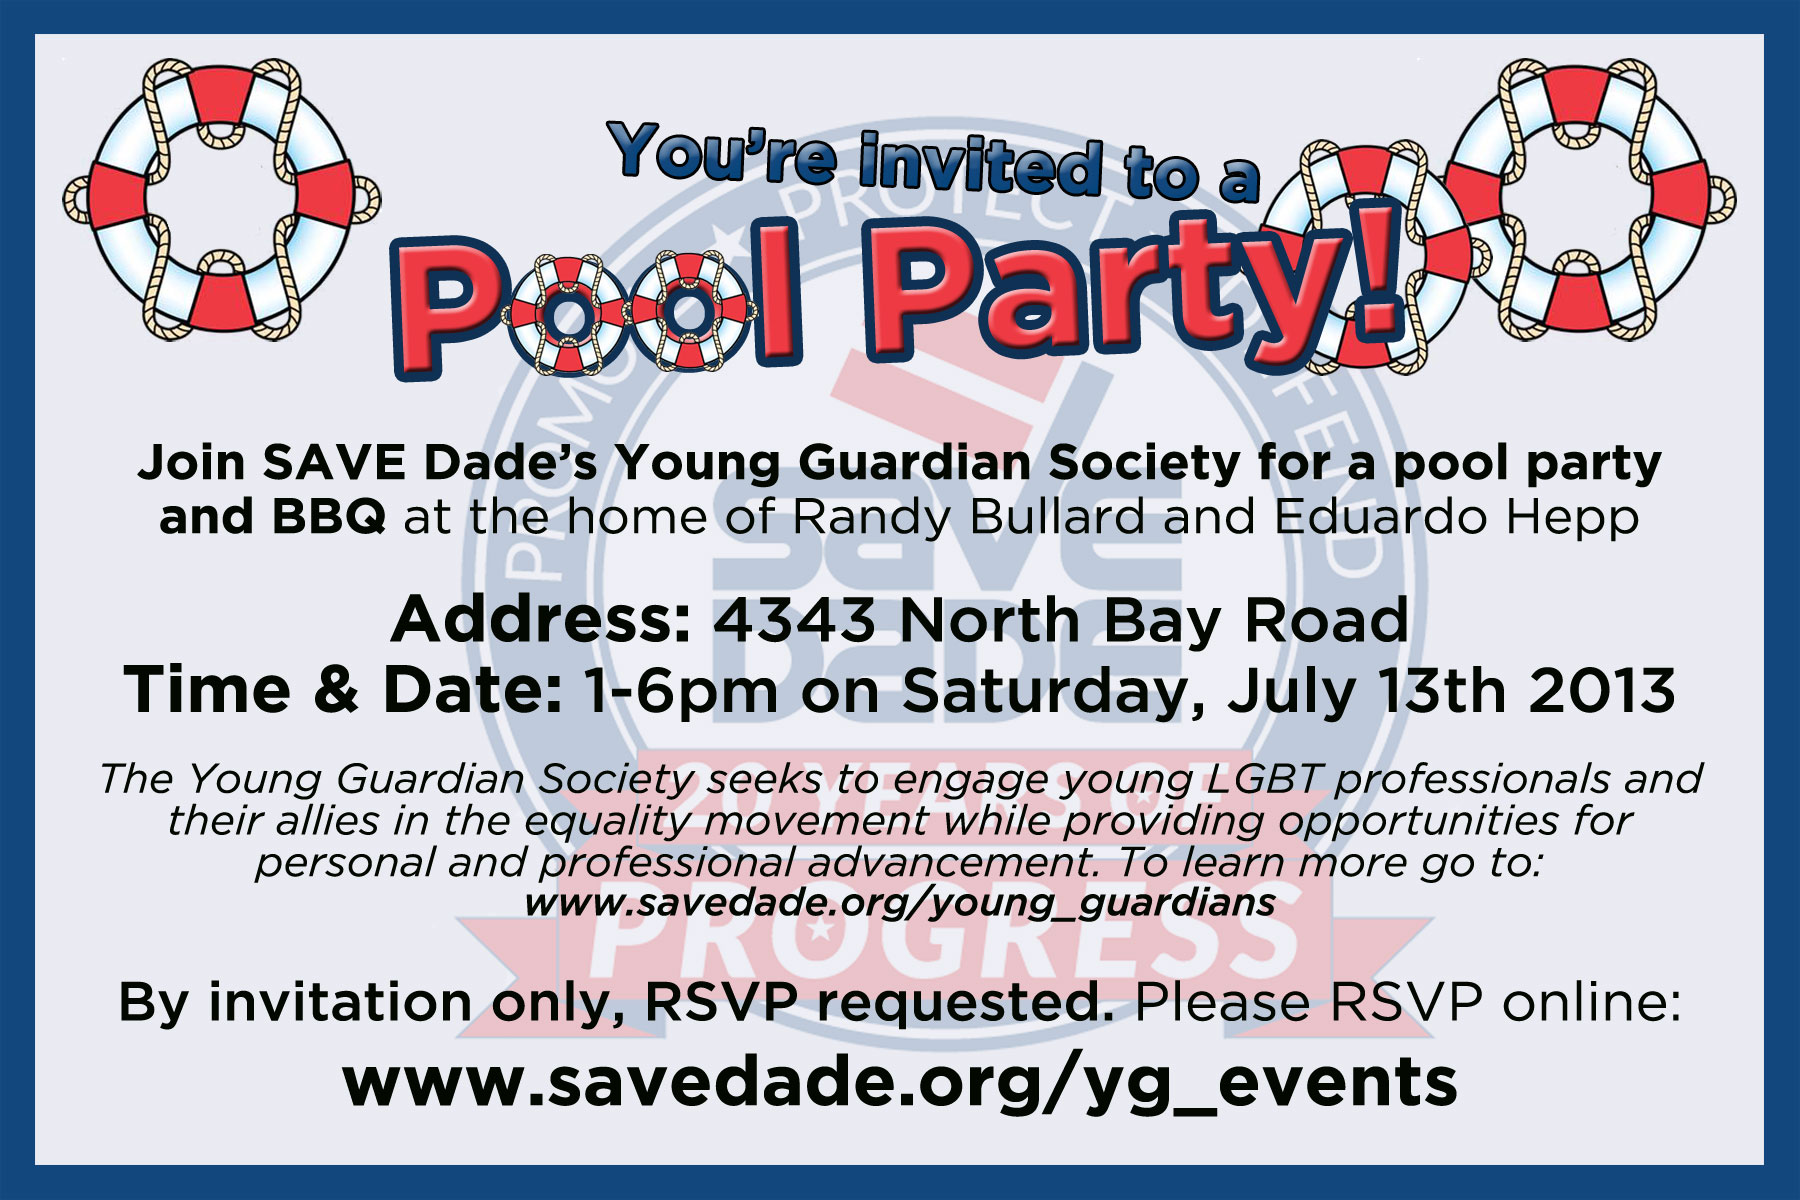 YG-Pool-Party-7-13-13.jpg